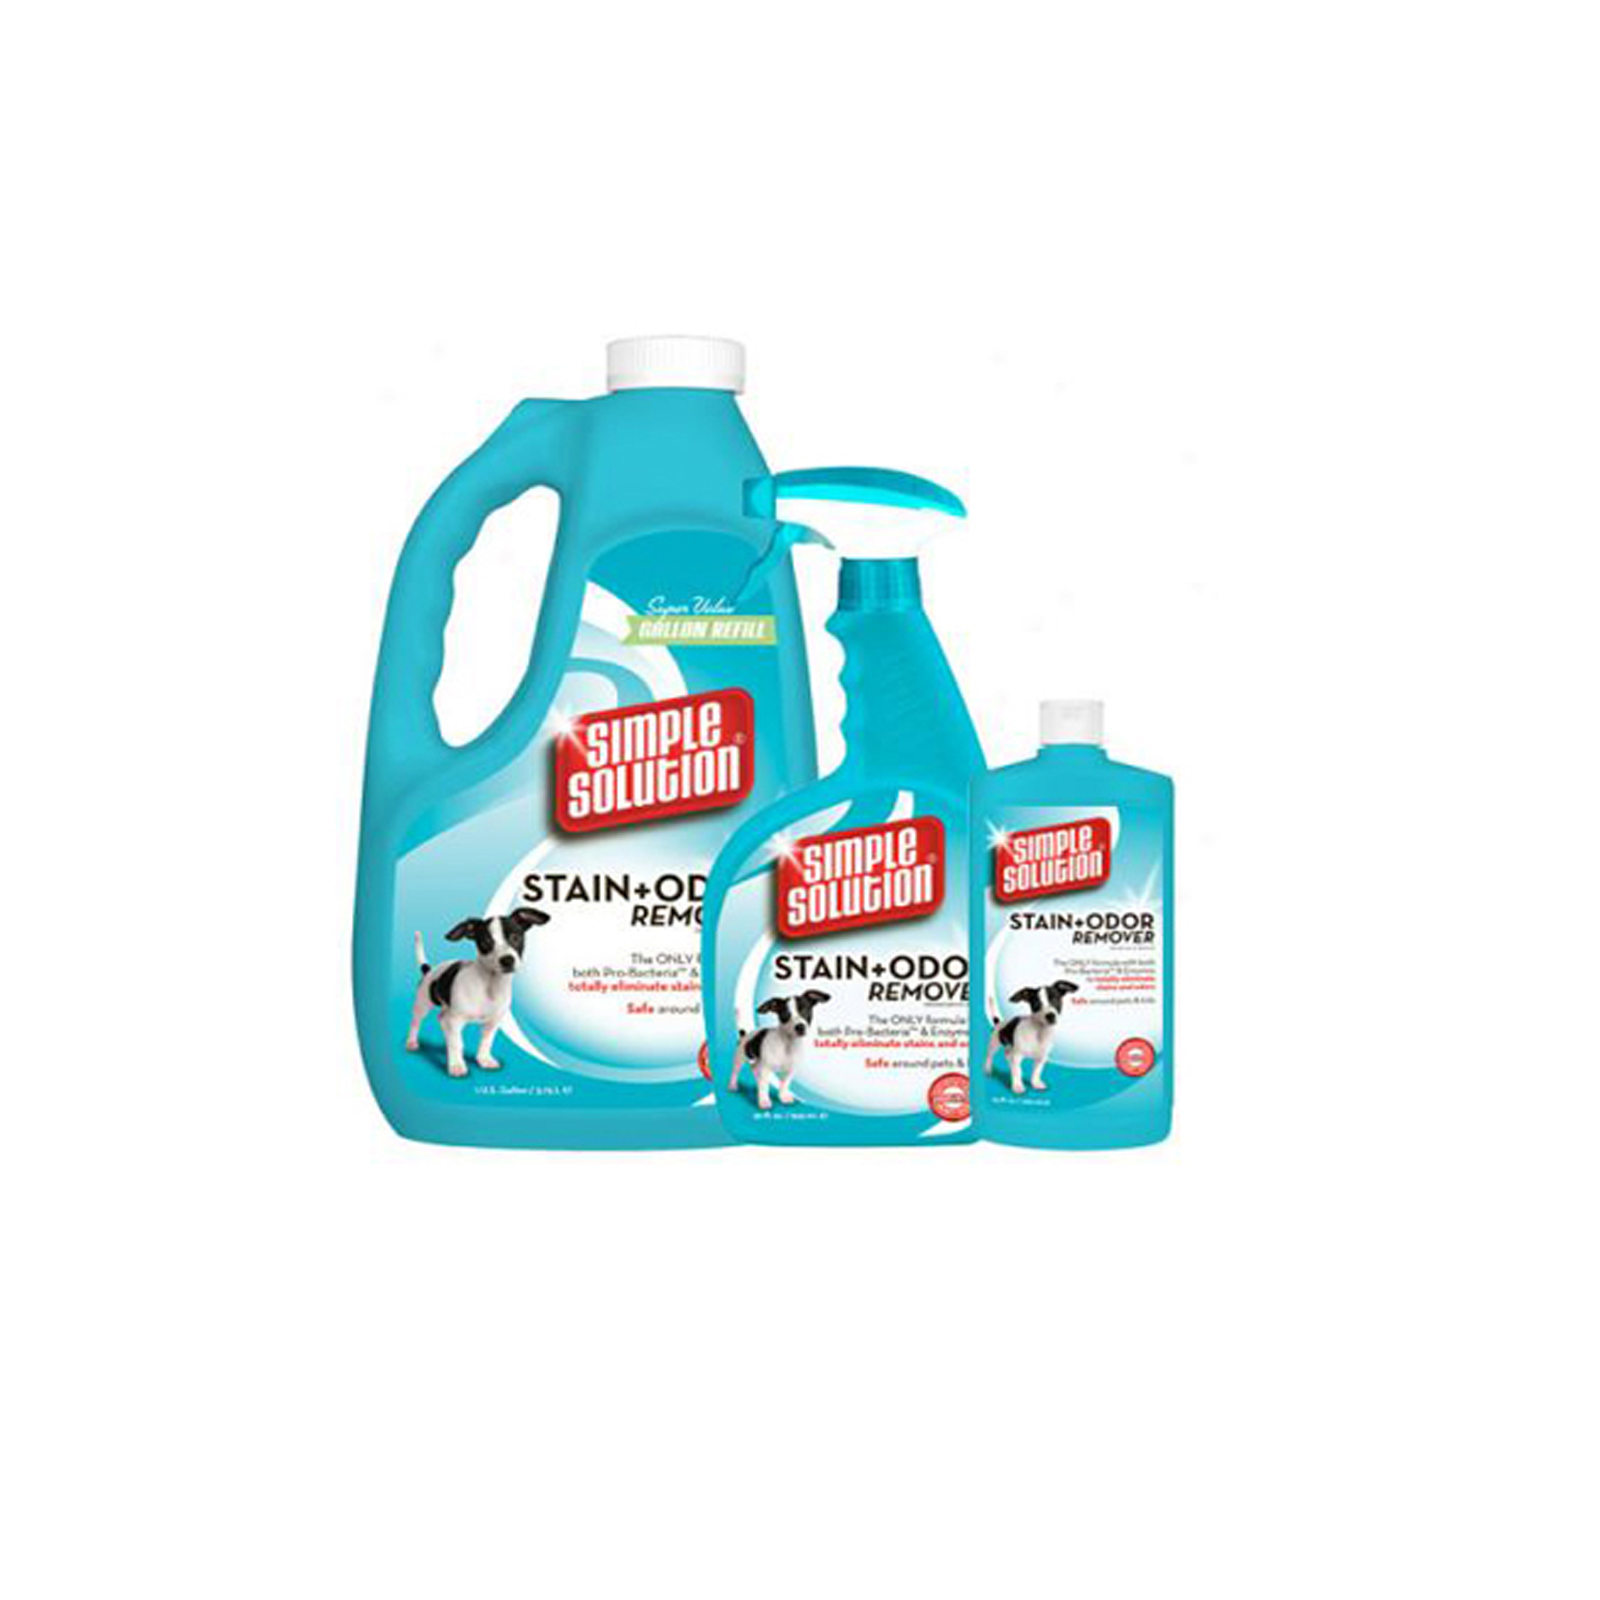 SIMPLE SOLUTION 11051-6P SIMPLE SOLUTION STAIN AND ODOR REMOVER 1 GALLON 5.42 X 7.09 X 11.88 PartNumber: 029V002047045000P